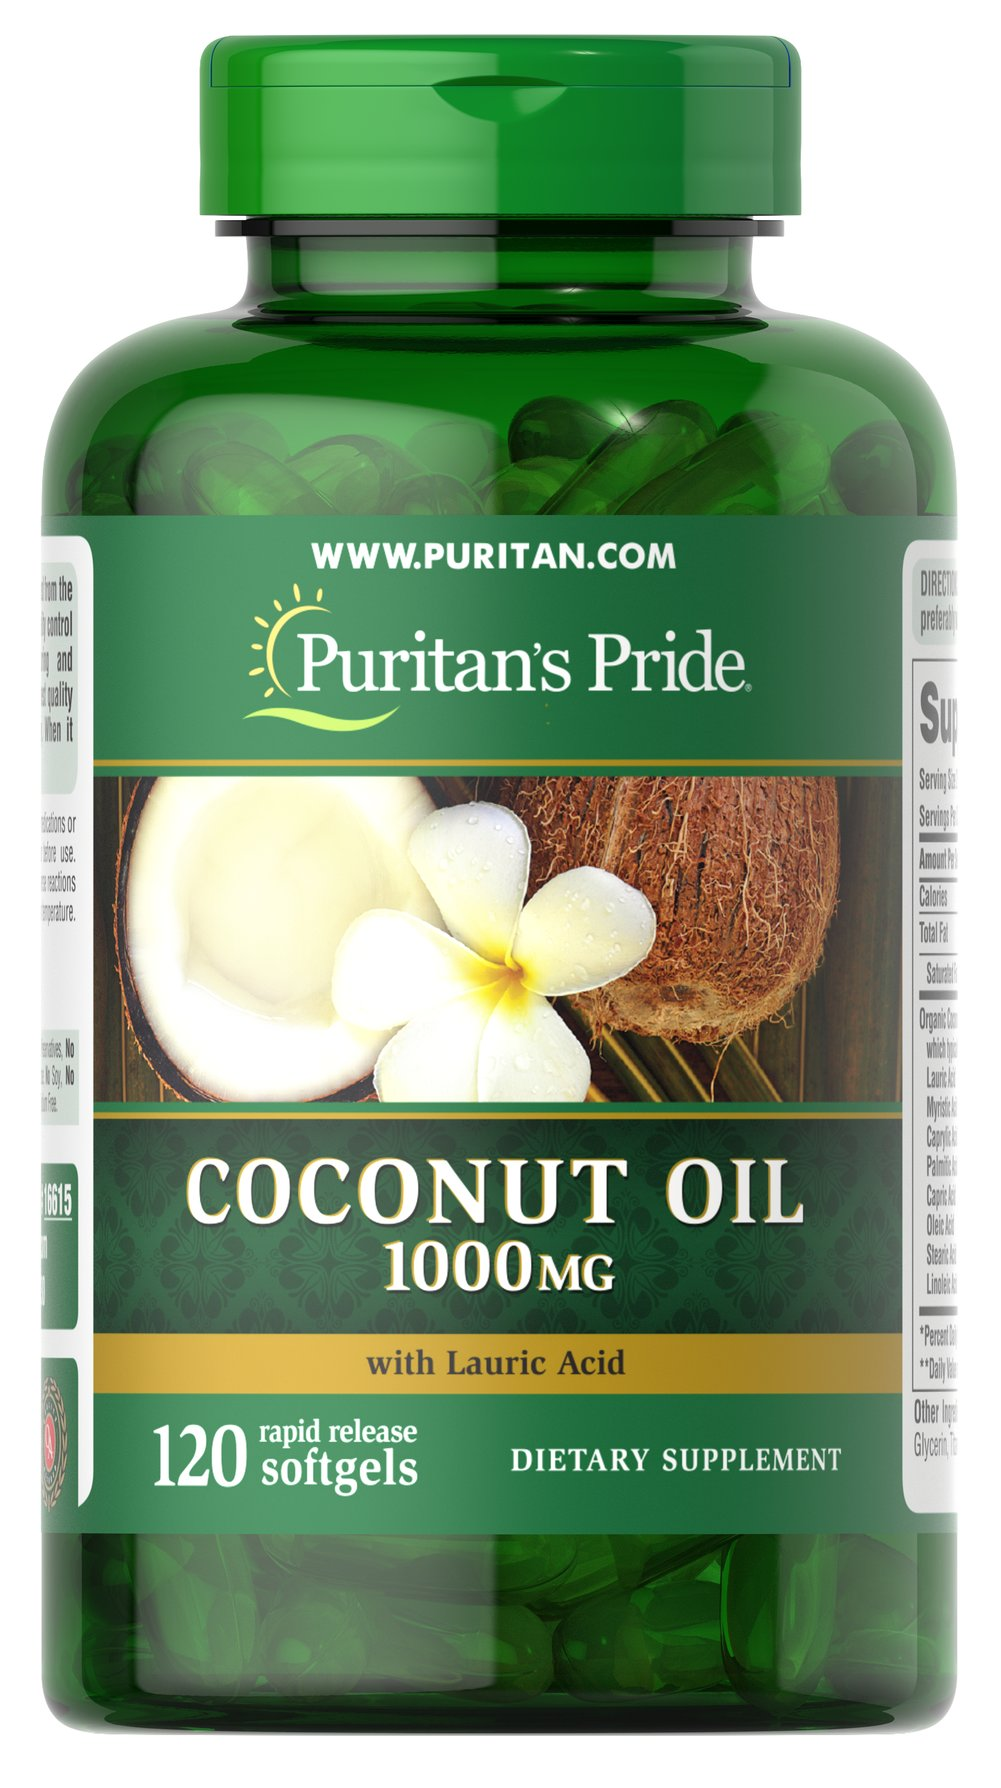 Coconut Oil 1000 mg <p>Coconuts are enjoyed in tropical regions around the world and now you can enjoy the benefits of Coconut Oil in a convenient softgel. Coconut Oil provides you with a natural energy source, and contains essential fatty acids and Medium Chain Triglycerides (MCTs).   MCTs are oxidized differently in the body than other fats, making Coconut Oil a readily available energy source.**</p> 120 Softgels 1000 mg $15.99